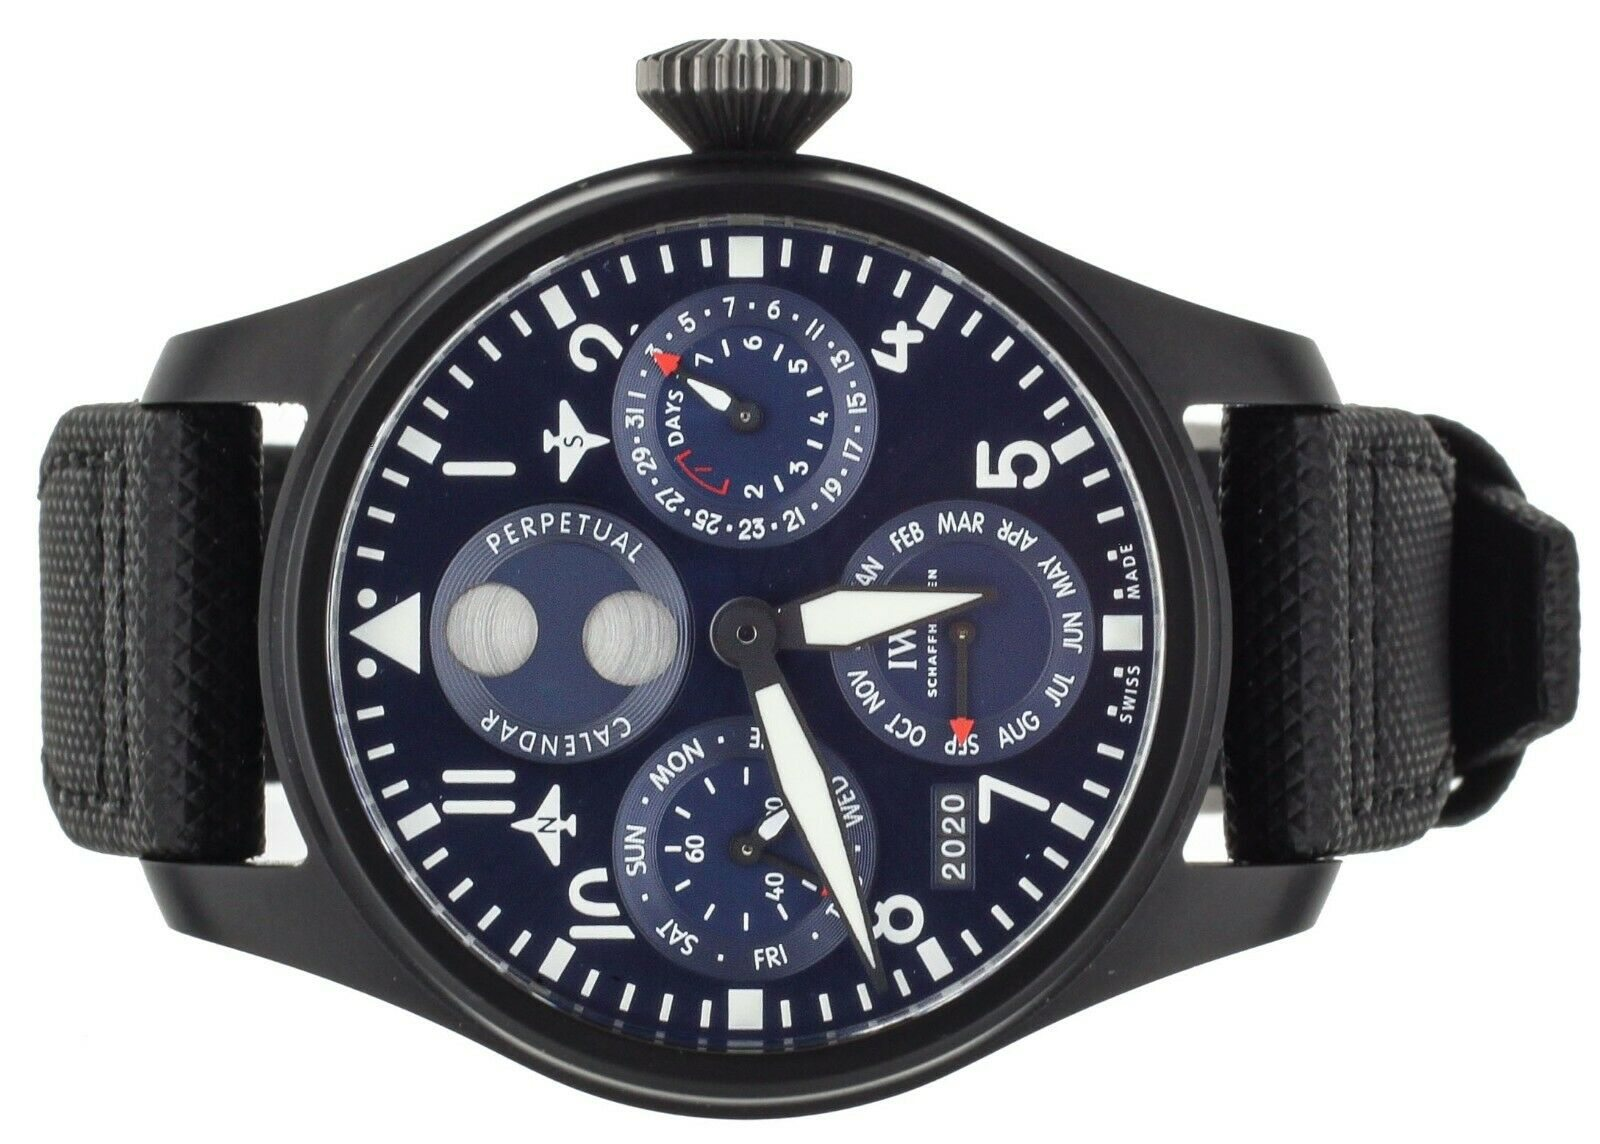 Image of IWC Big Pilot Perpetual Calendar Rodeo Drive 46mm Blue IW503001 Complete Set